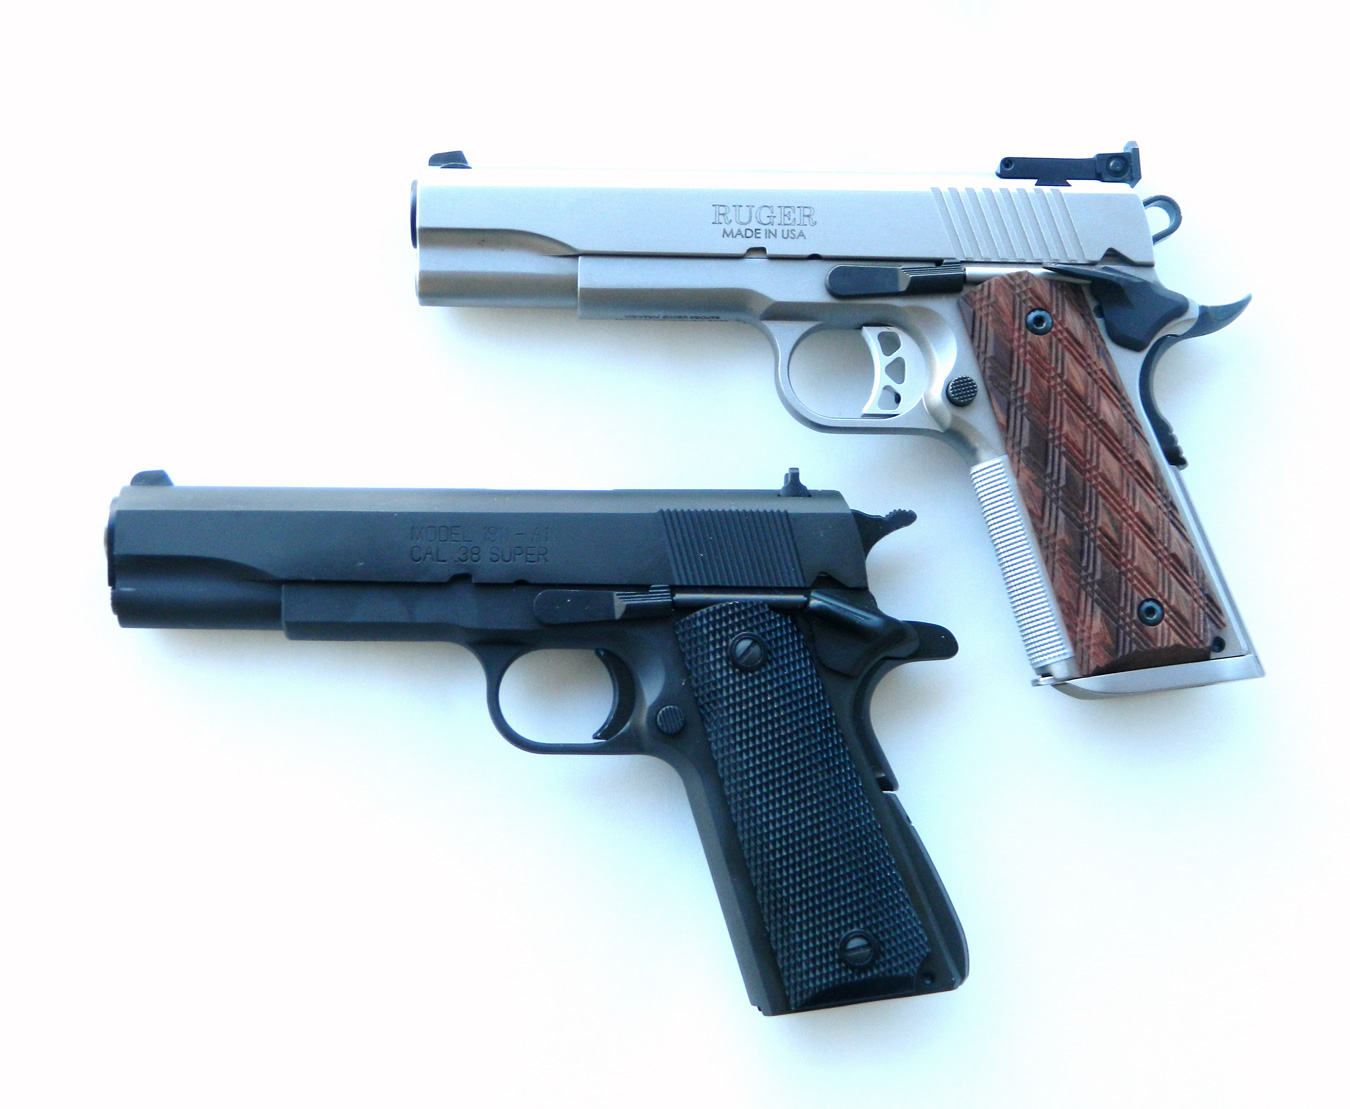 Ruger 10mm, top, and Springfield .38 Super pistol, bottom,